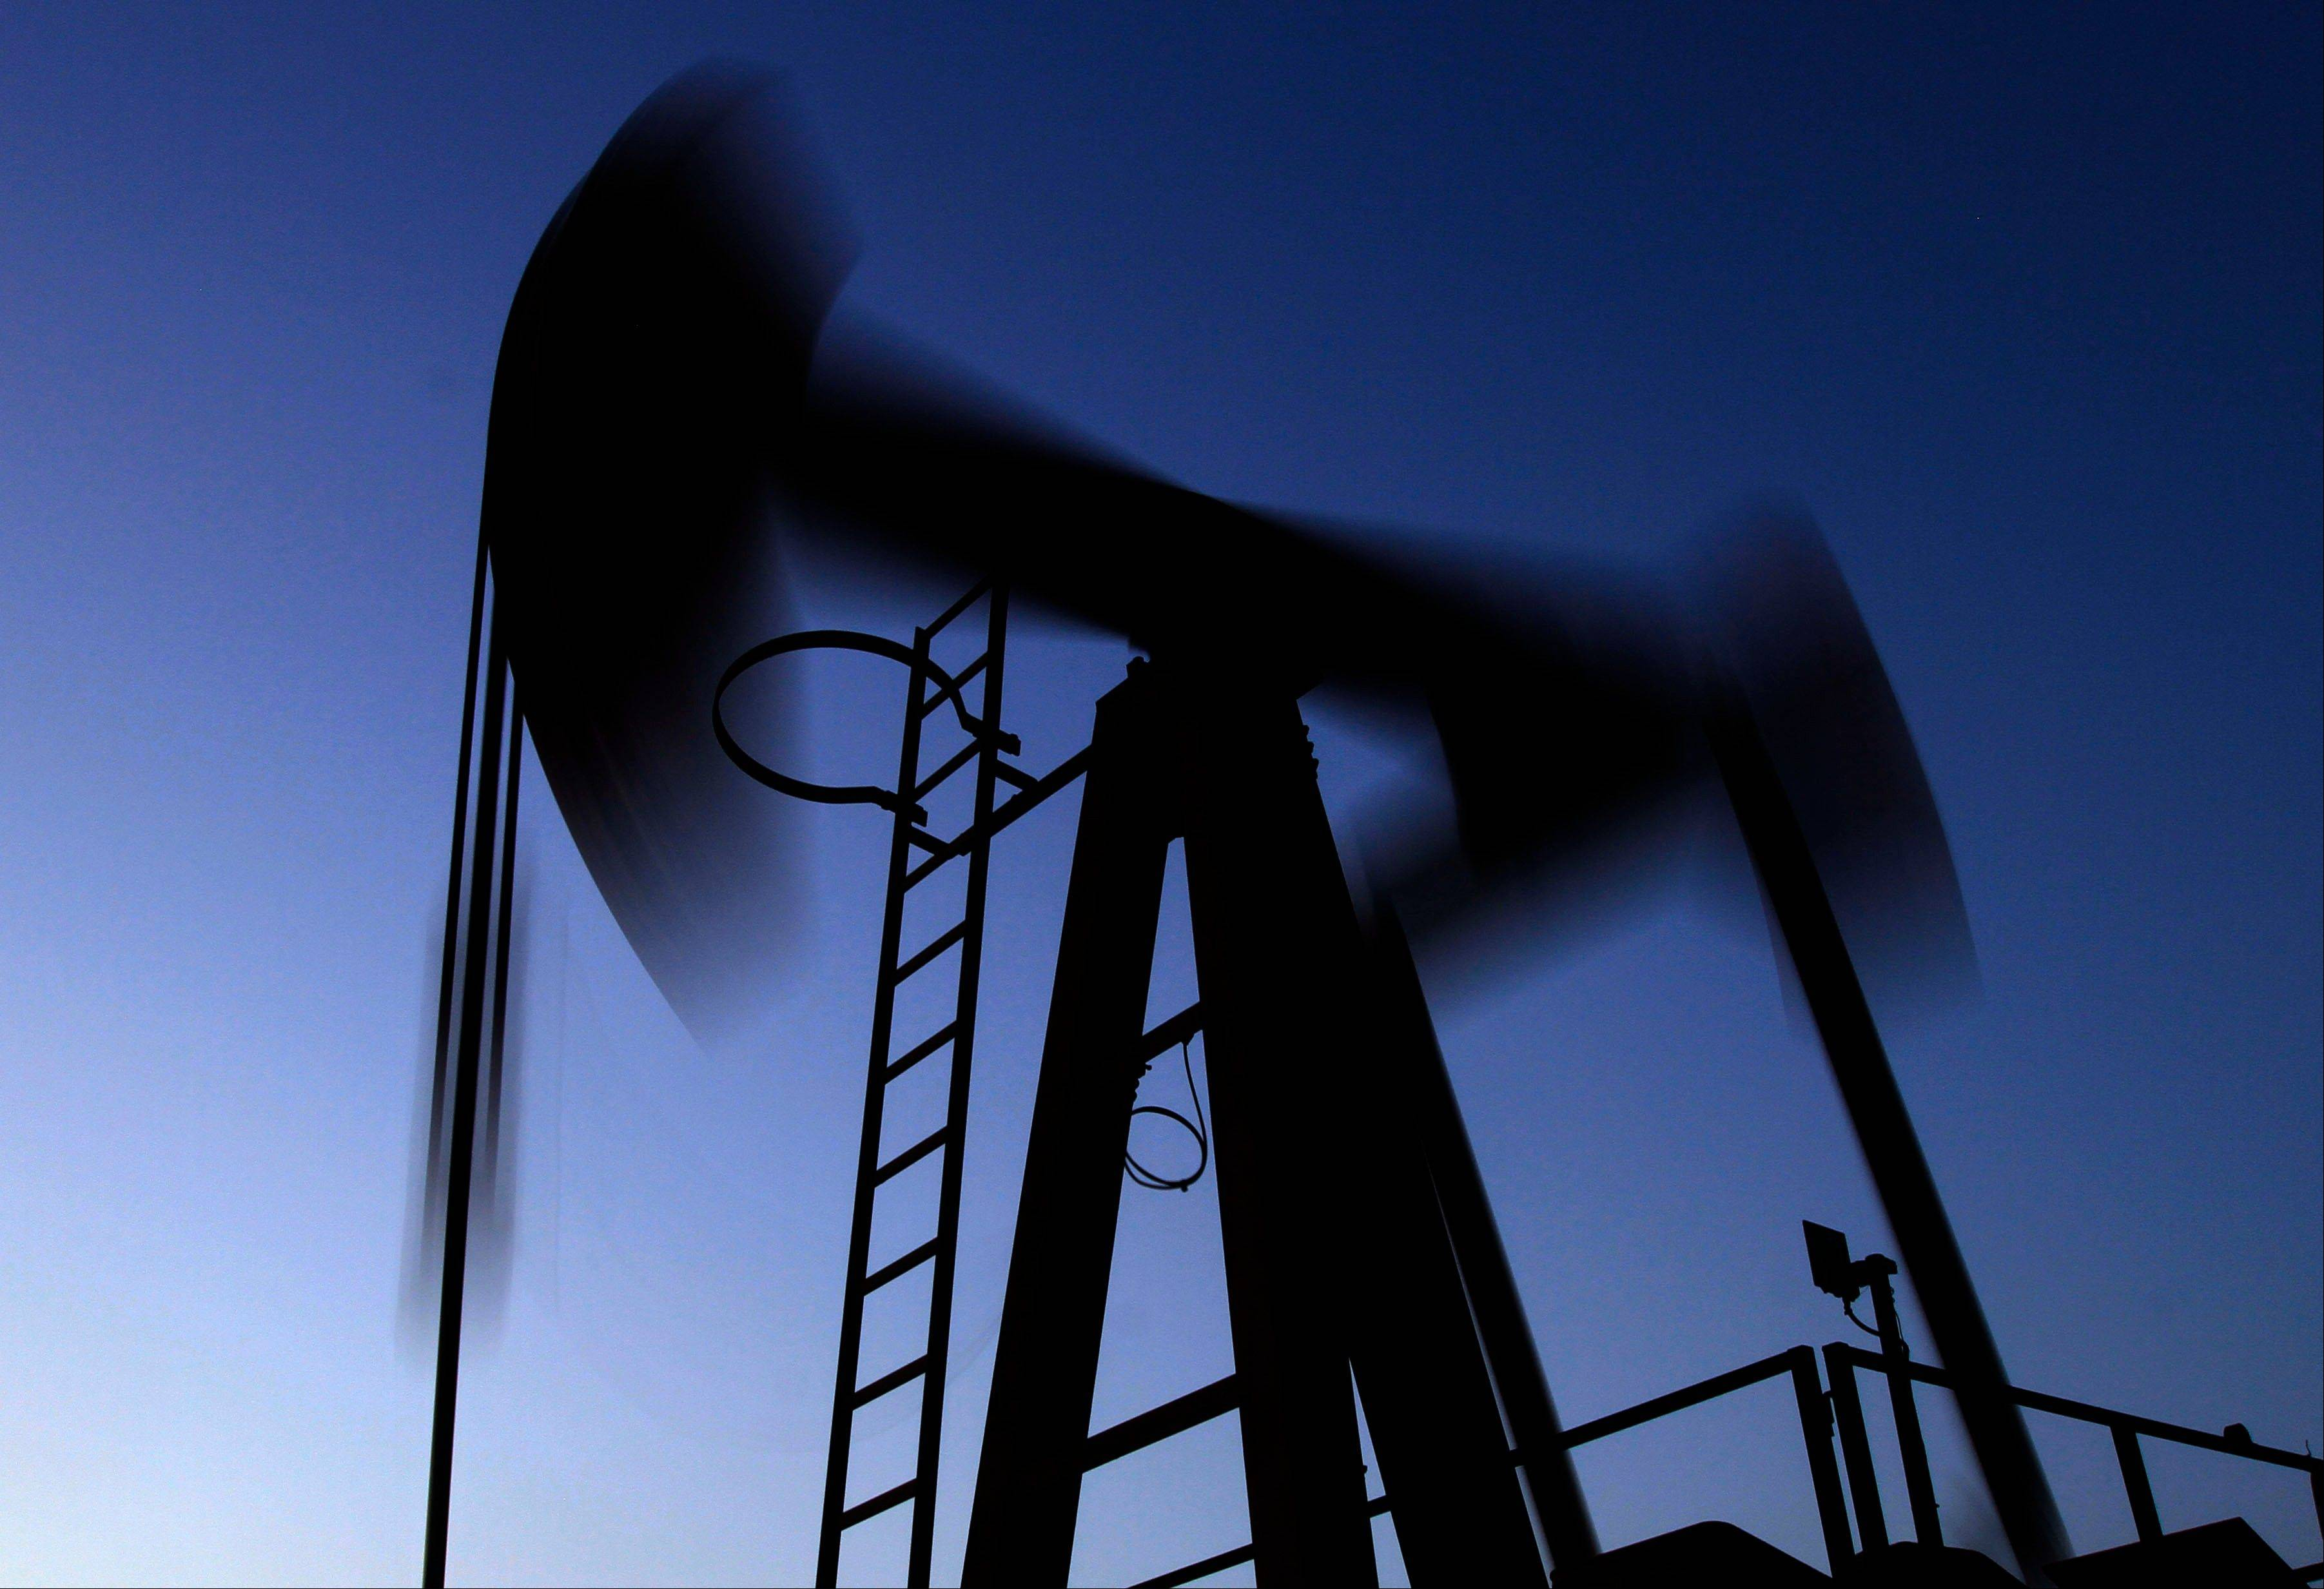 The price of oil fell Monday after a stronger jobs growth in the U.S. sparked speculation of an earlier end to the Federal Reserve�s loose monetary policy.